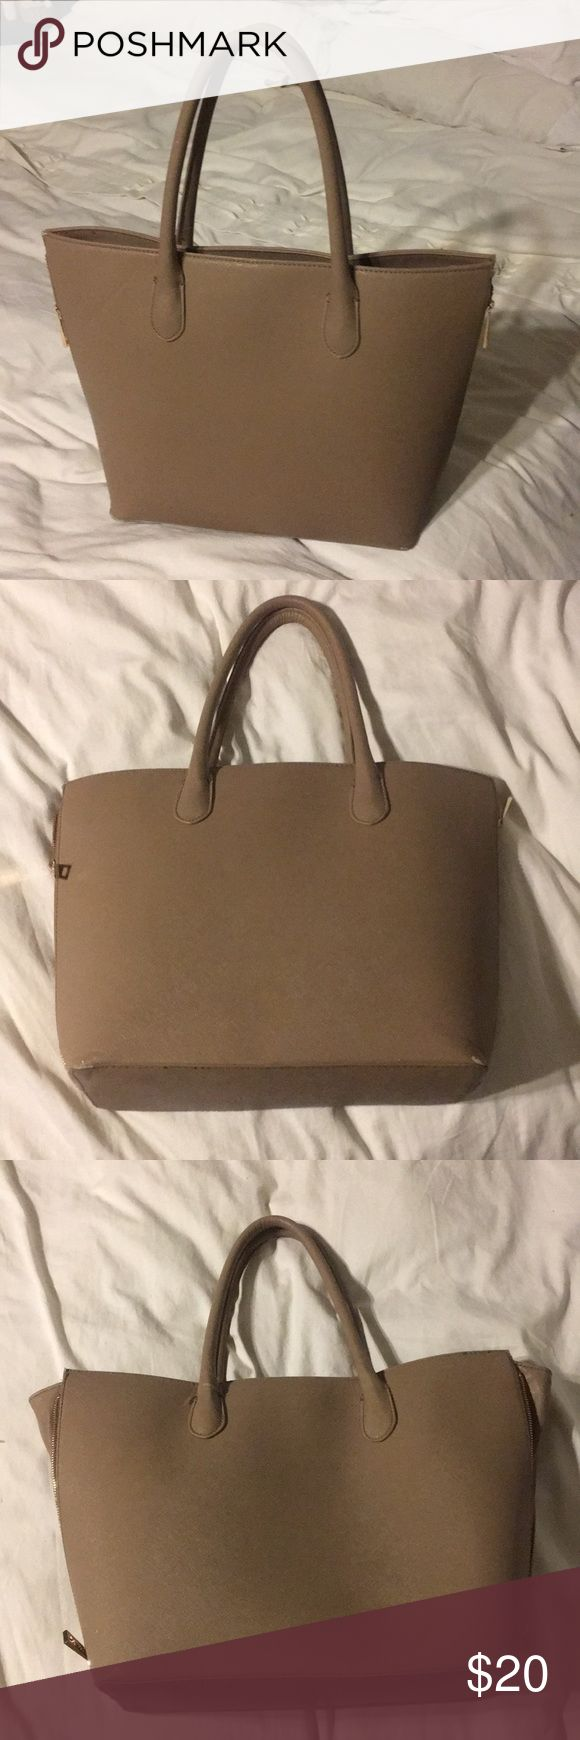 "Beige h & m purse Faux leather  Used maybe 5 times Zippers on side go up and down for expansion Great purse for traveling 12"" by 15"" H&M Bags Shoulder Bags"